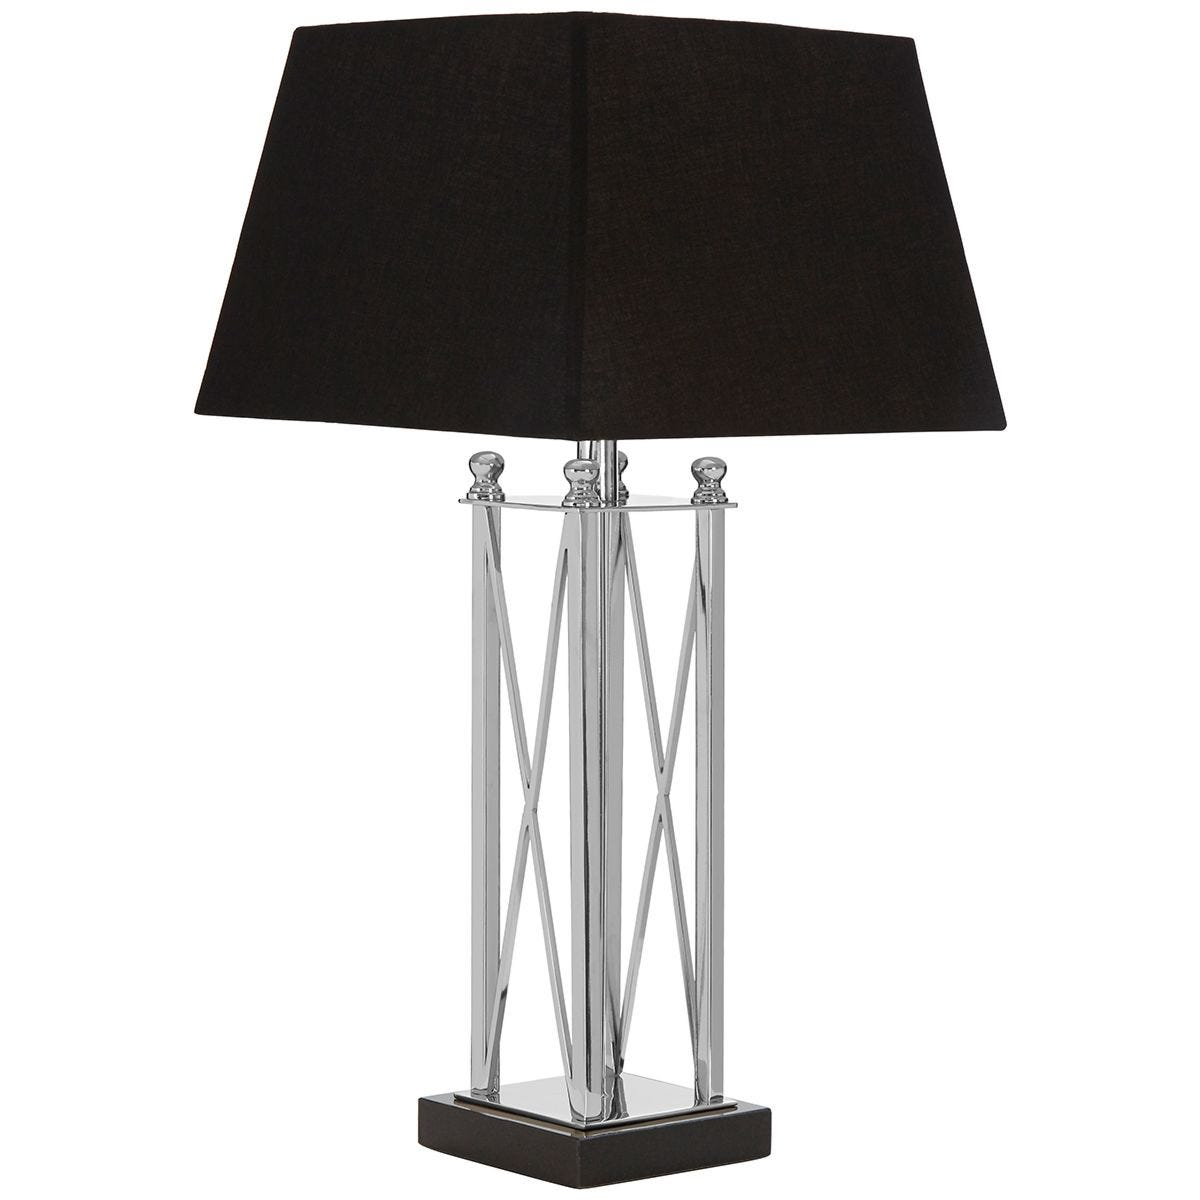 Premier Housewares Hoffmann Table Lamp with Granite Base & Black Fabric Shade